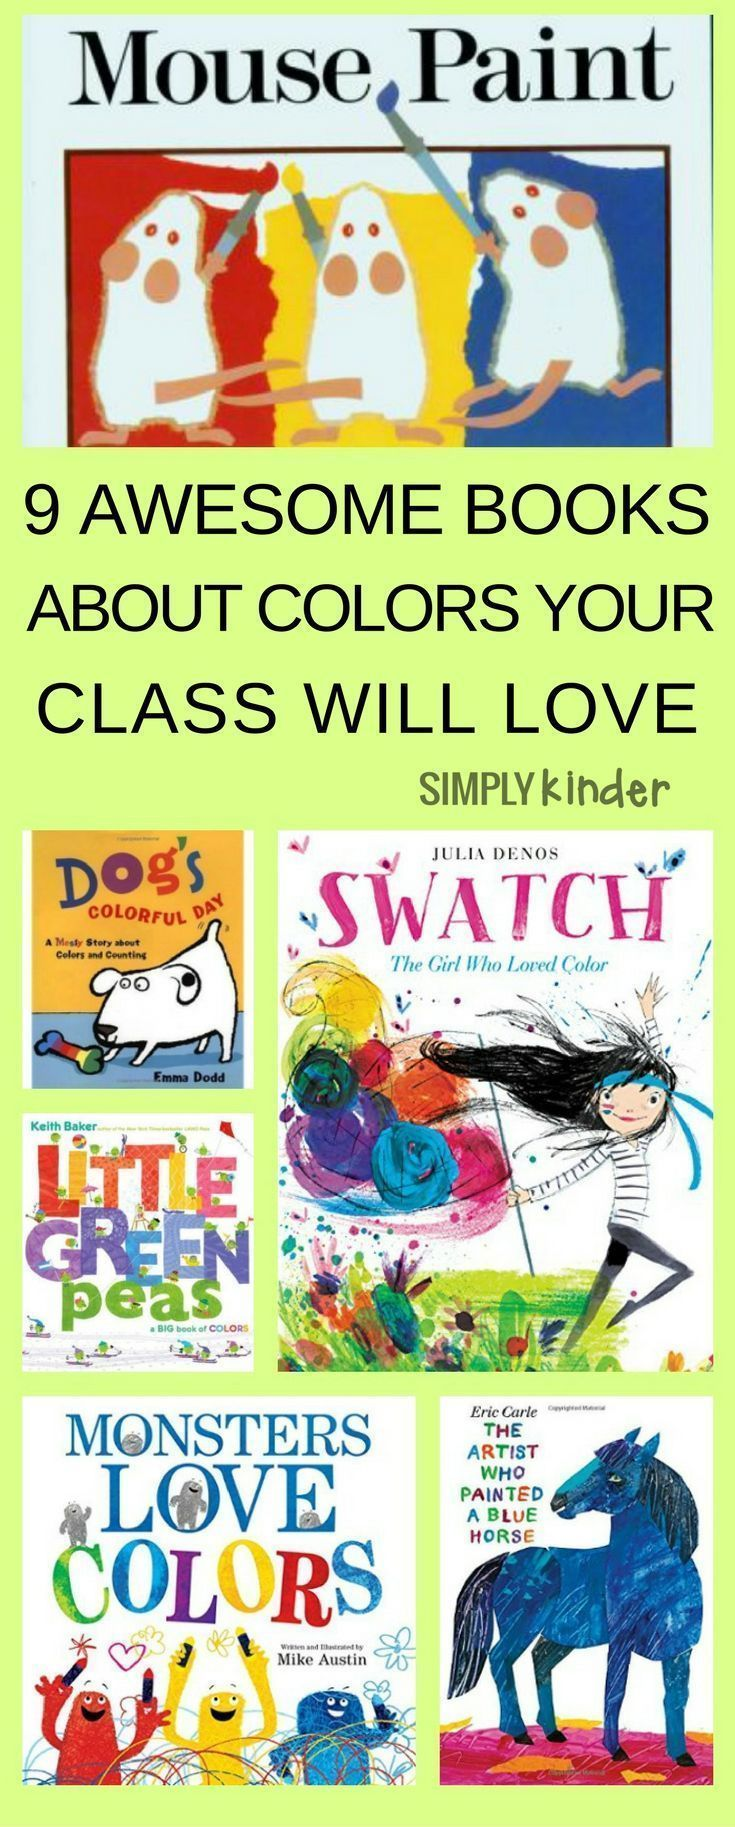 9 Awesome Books About Color Your Class Will Love | Learning colors ...